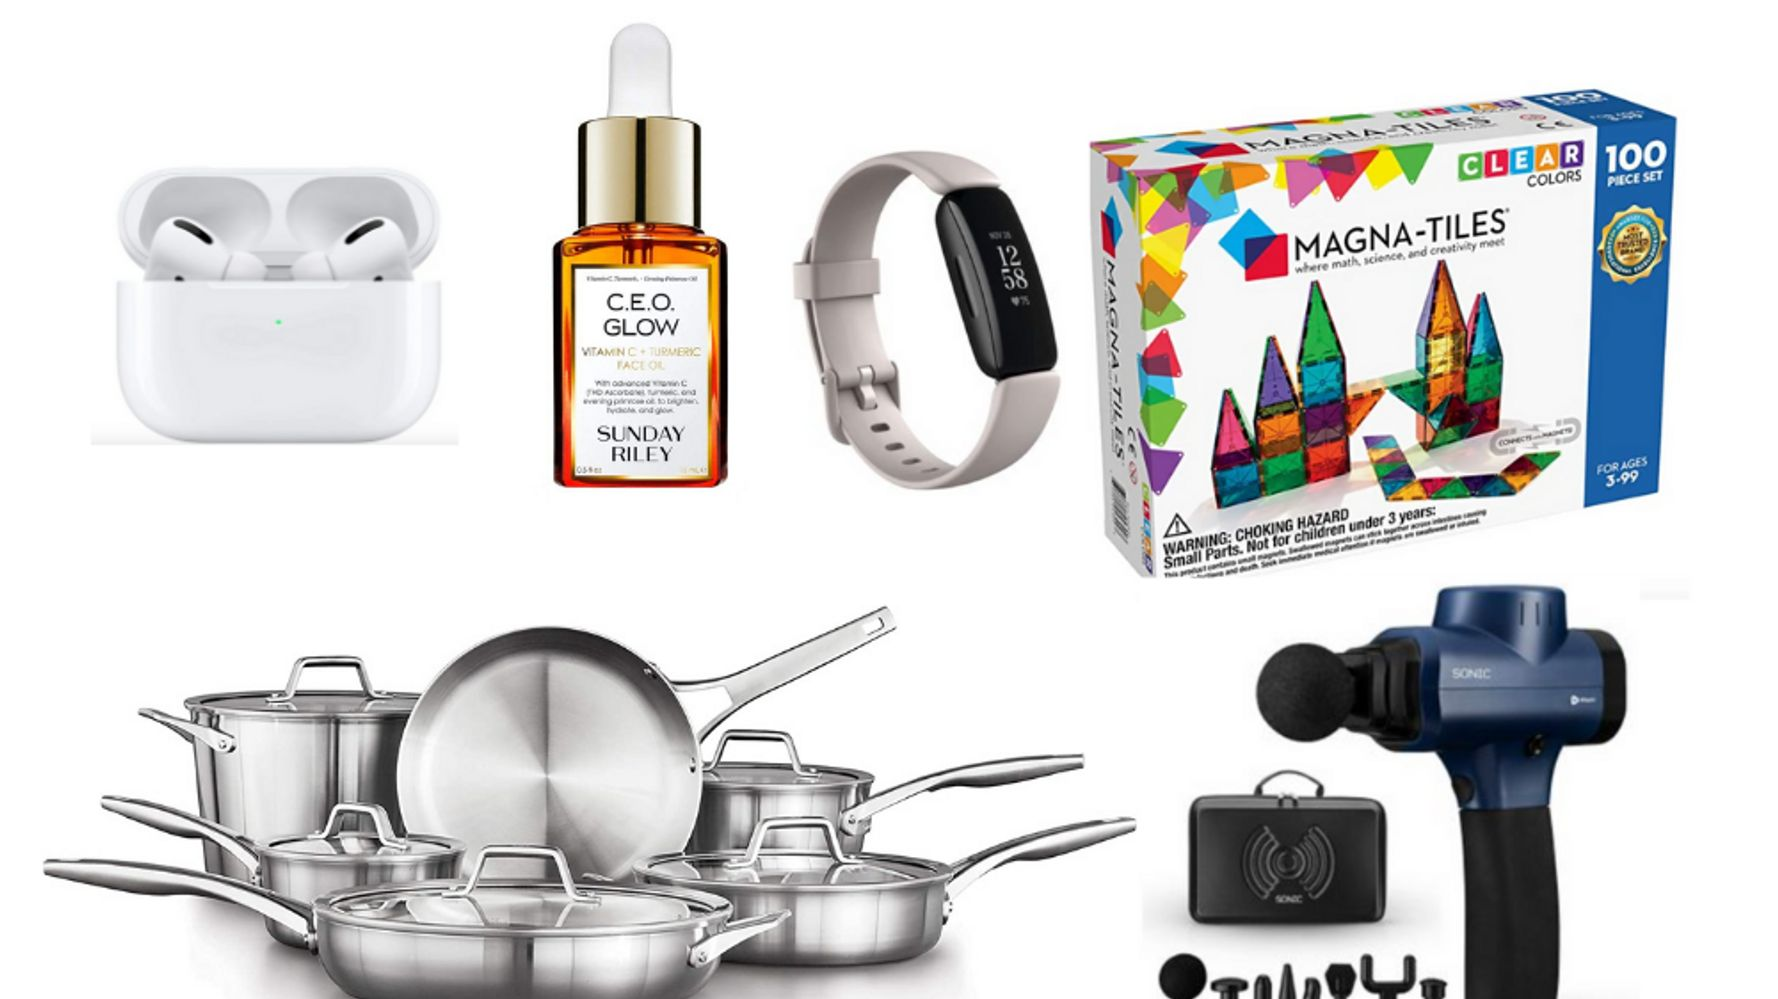 The Best Amazon Prime Day Deals To Snag Before They're Gone - HuffPost